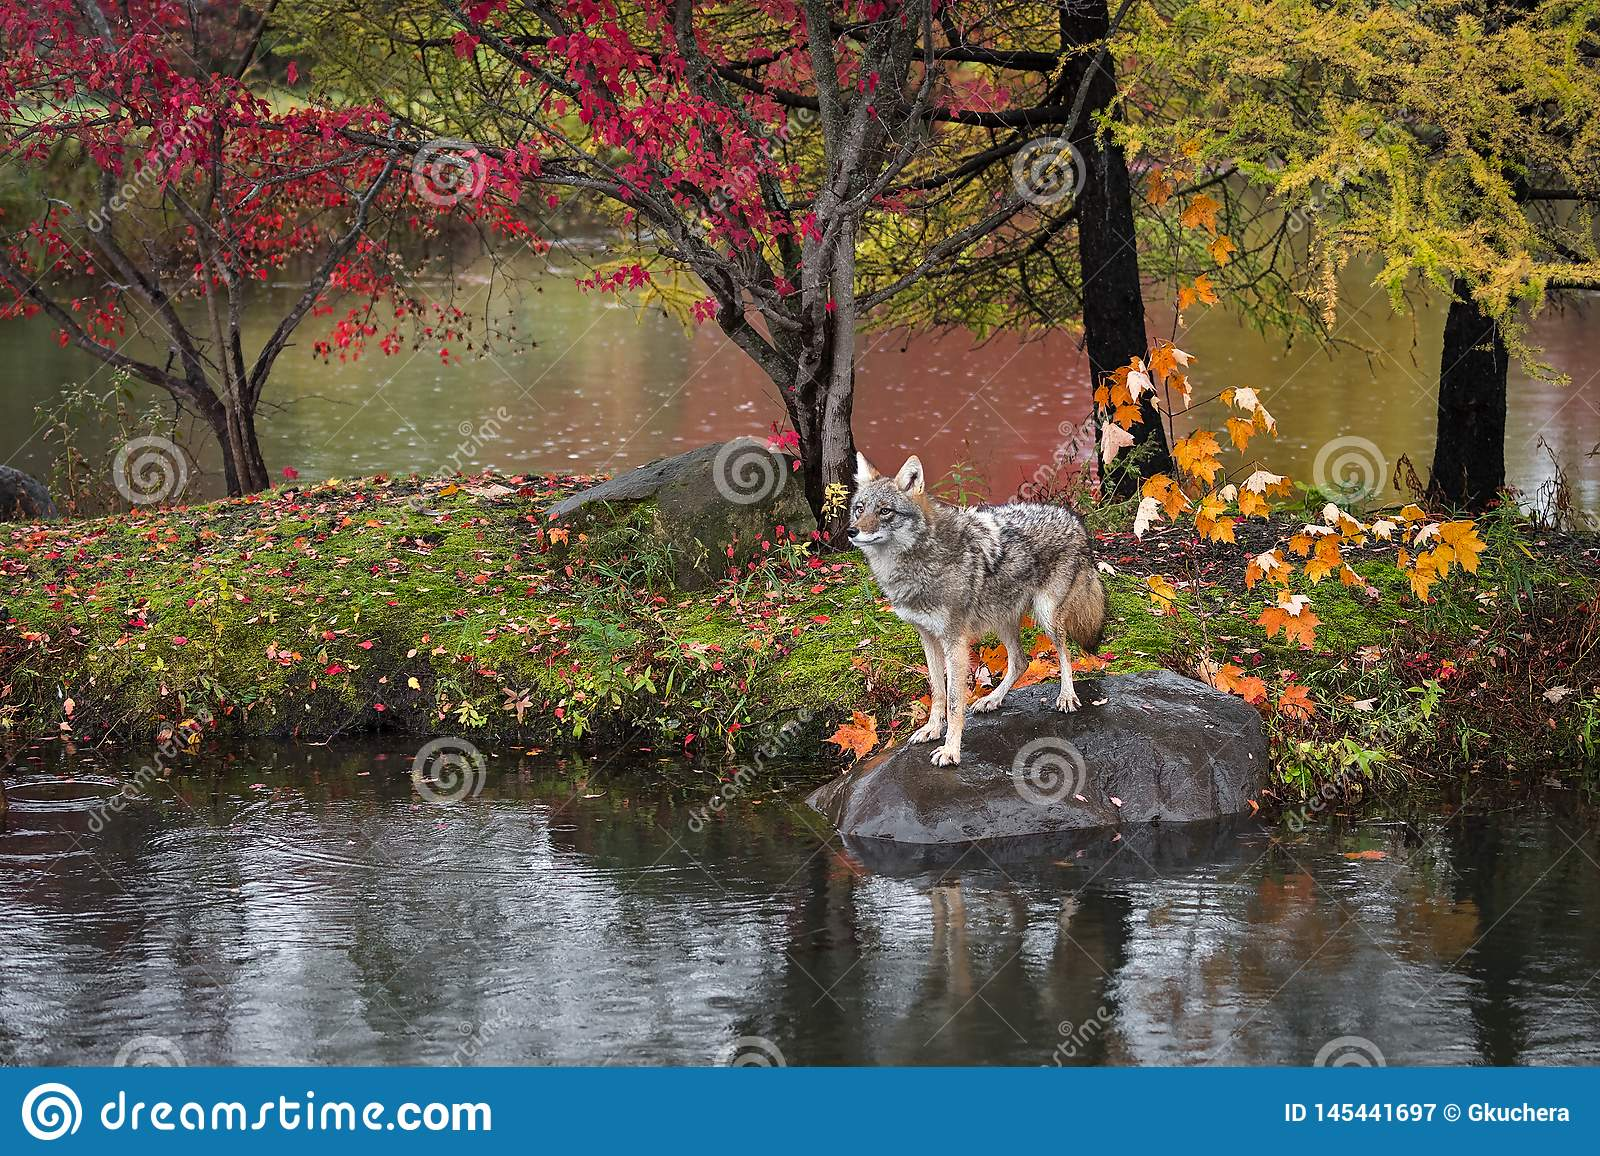 Coyote Canis latrans Stands on Rock Island Autumn